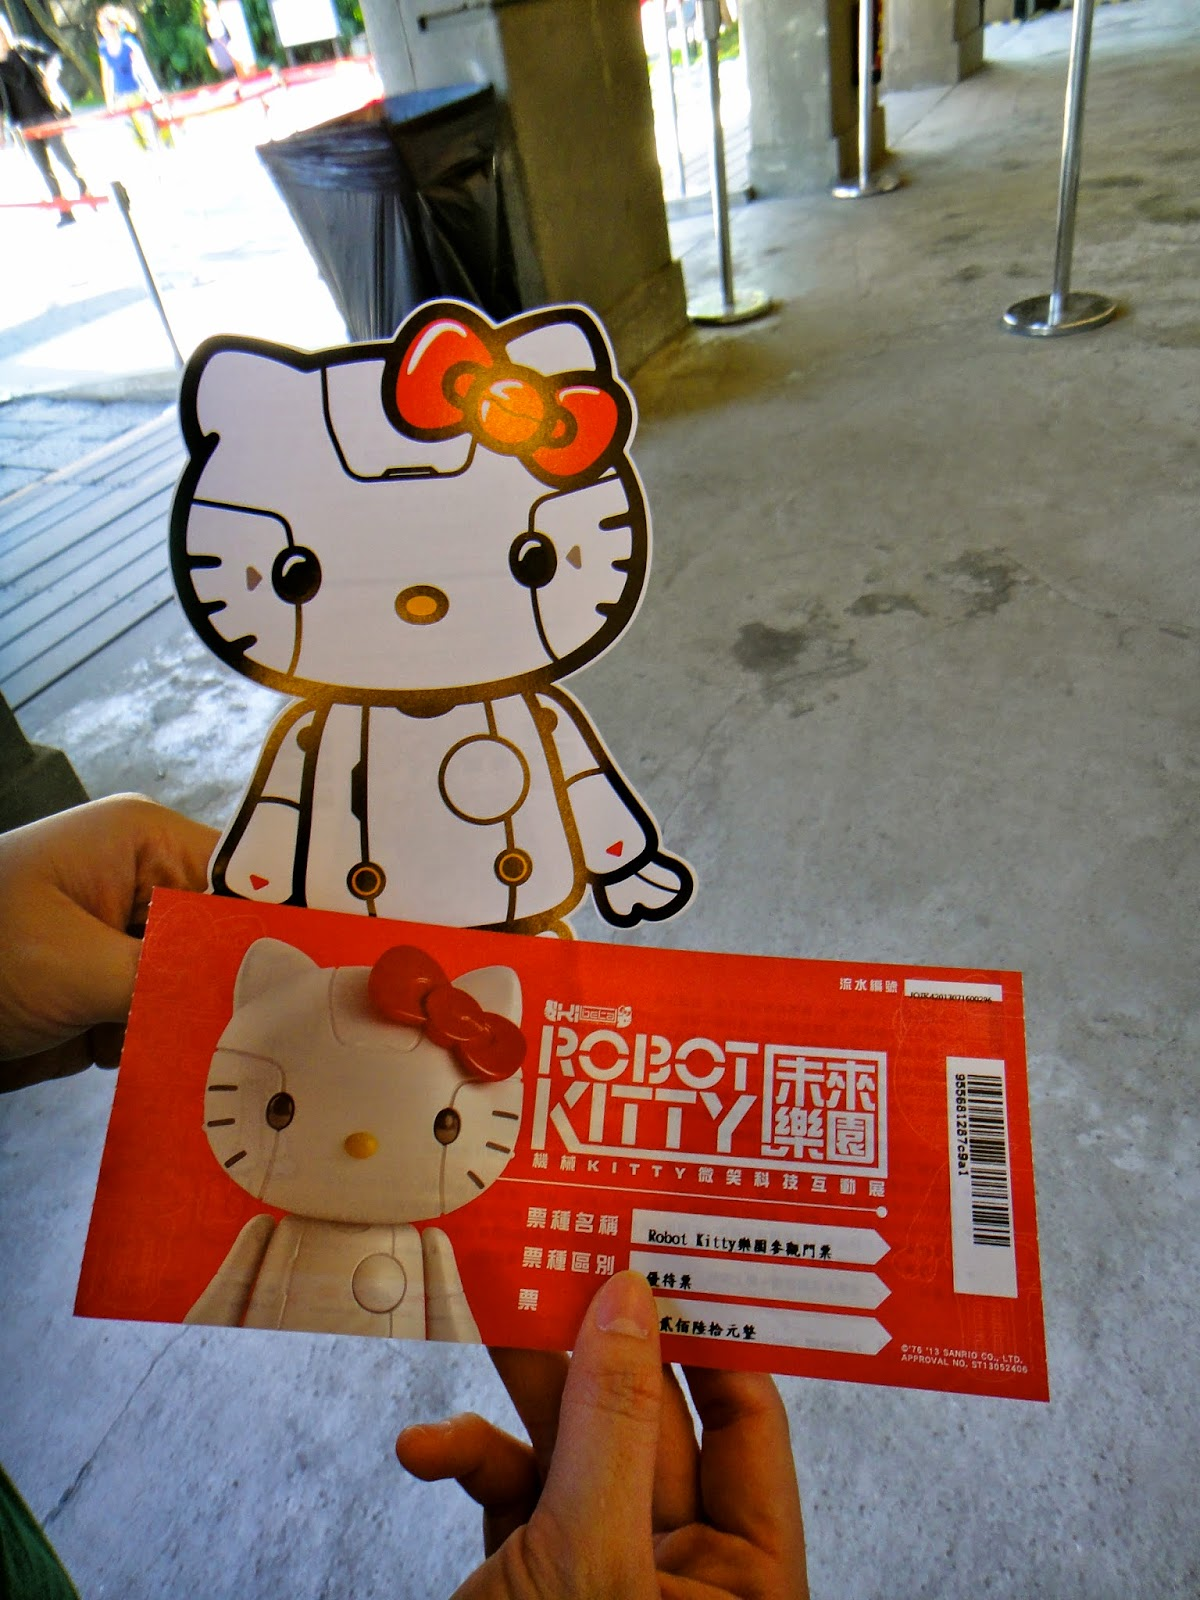 Robot Kitty Exhibition Ticket